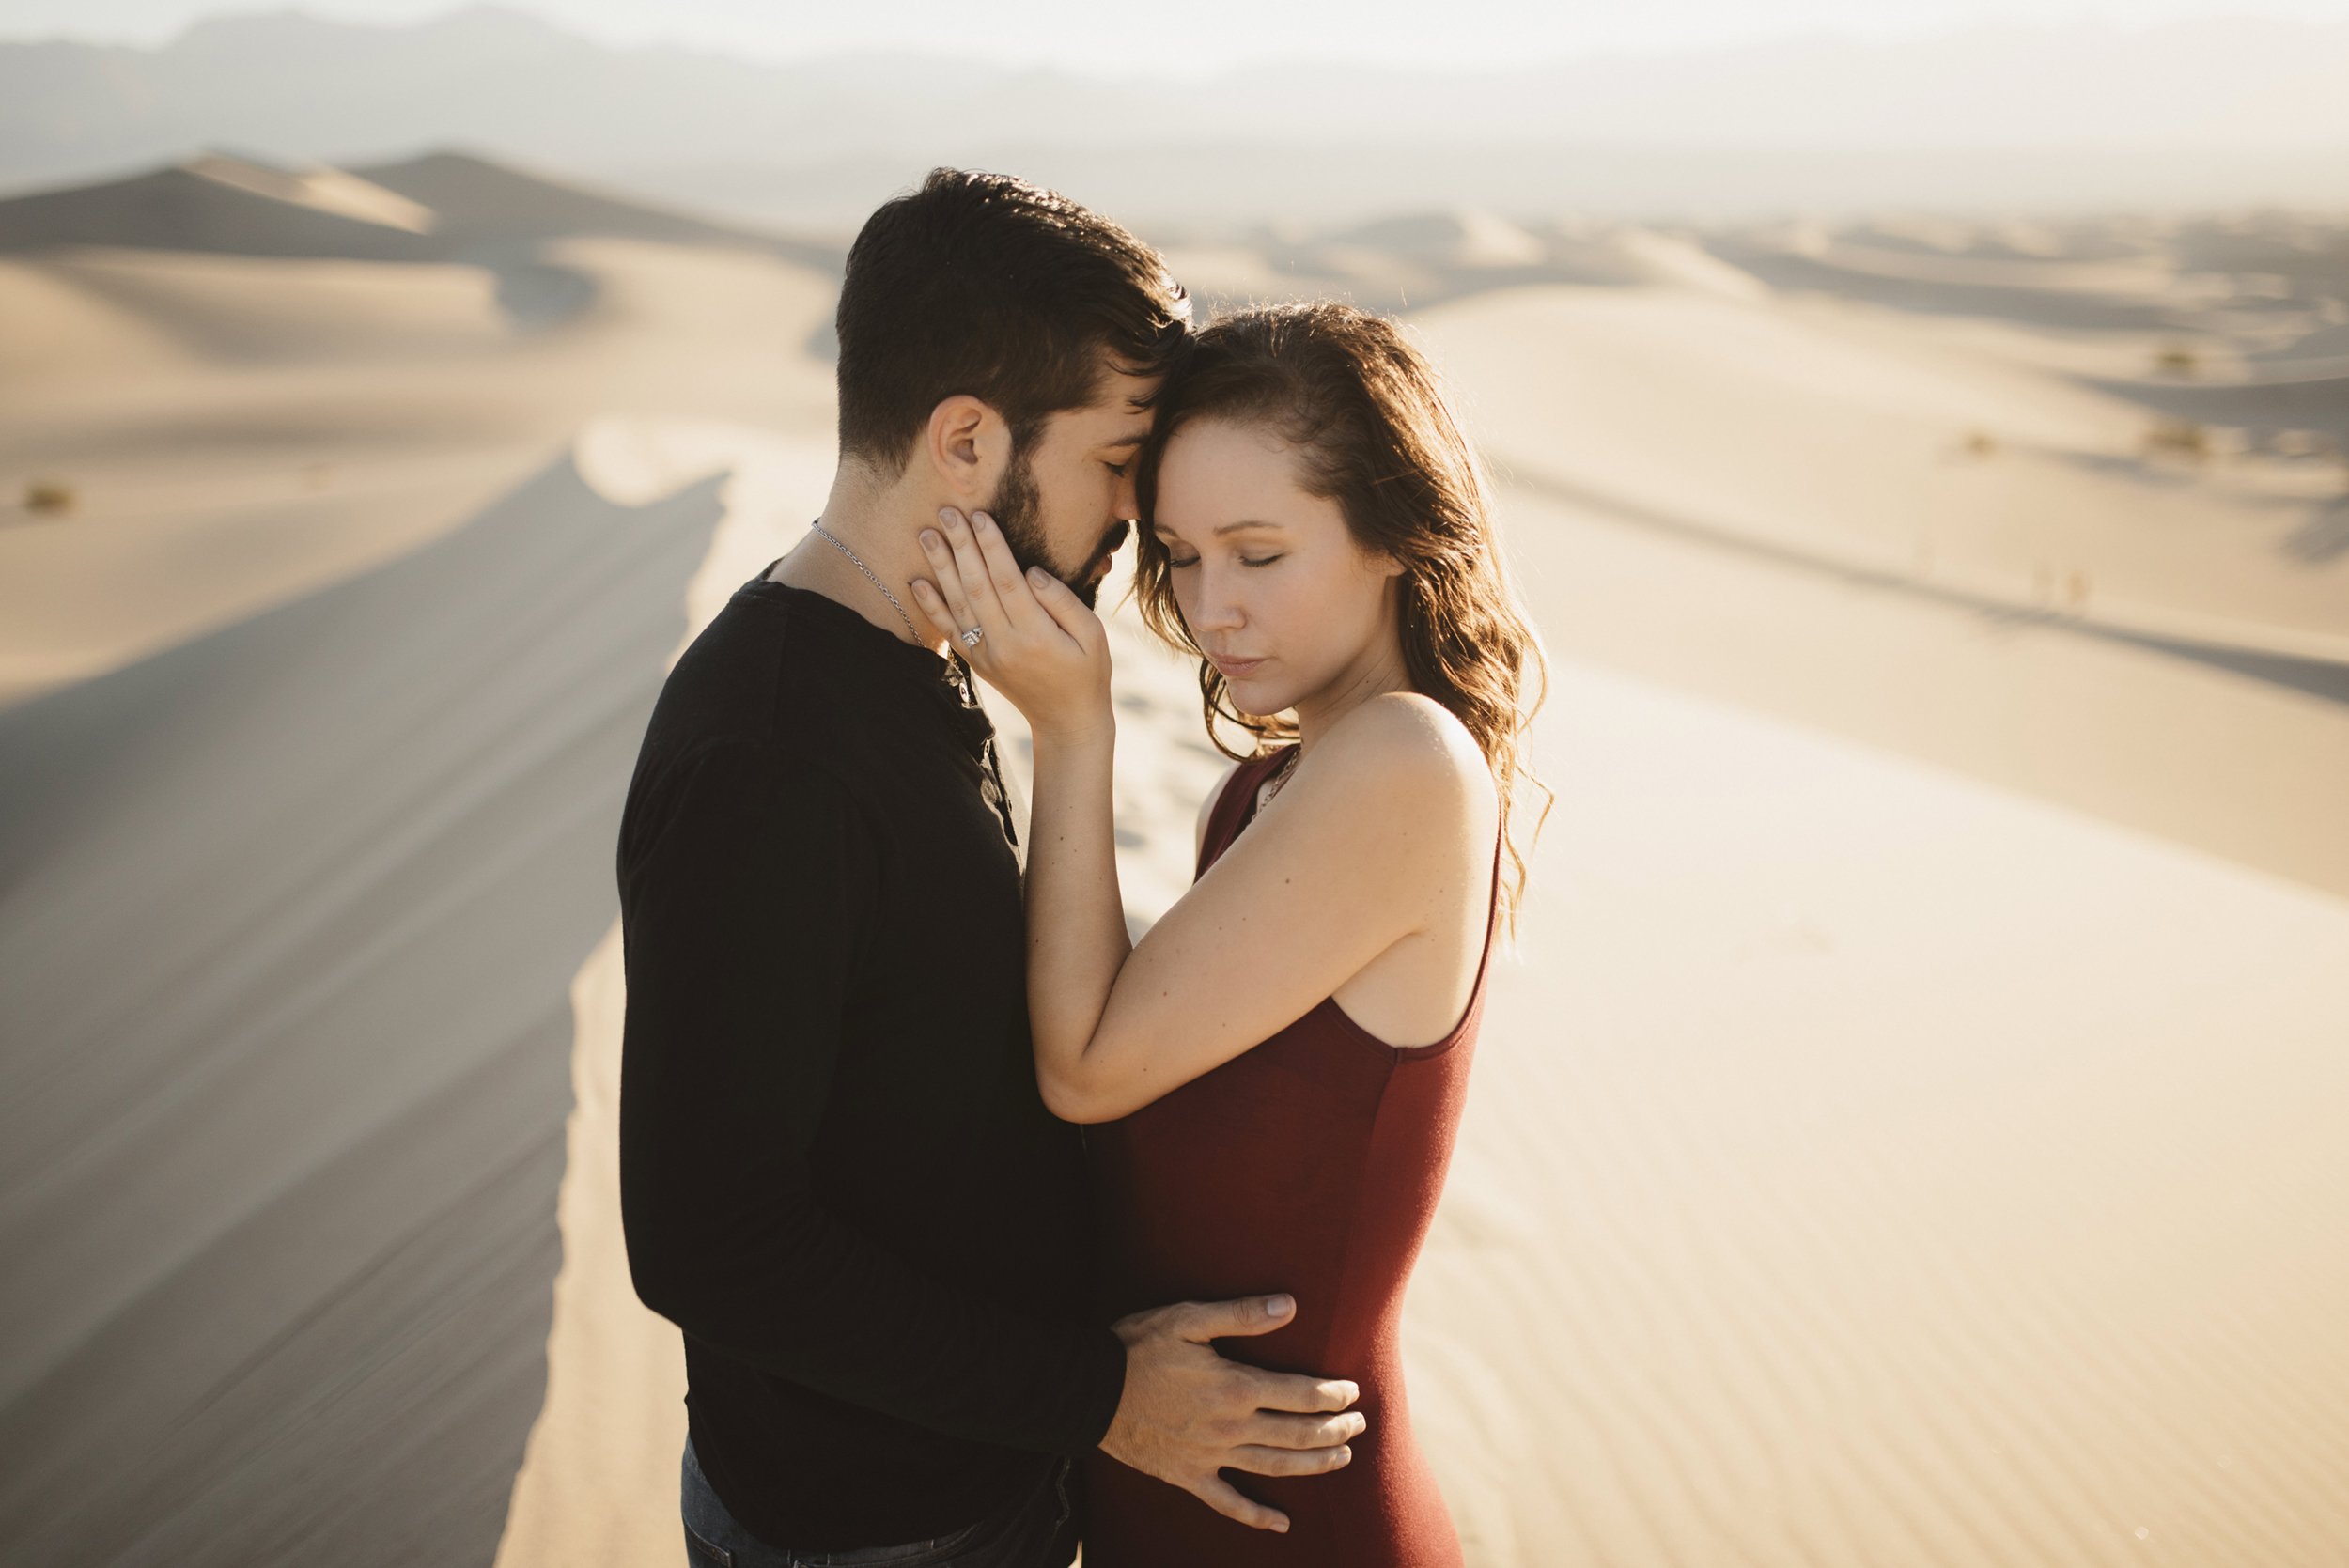 Death Valley California Desert Adventure Engagement Photographer164.jpg